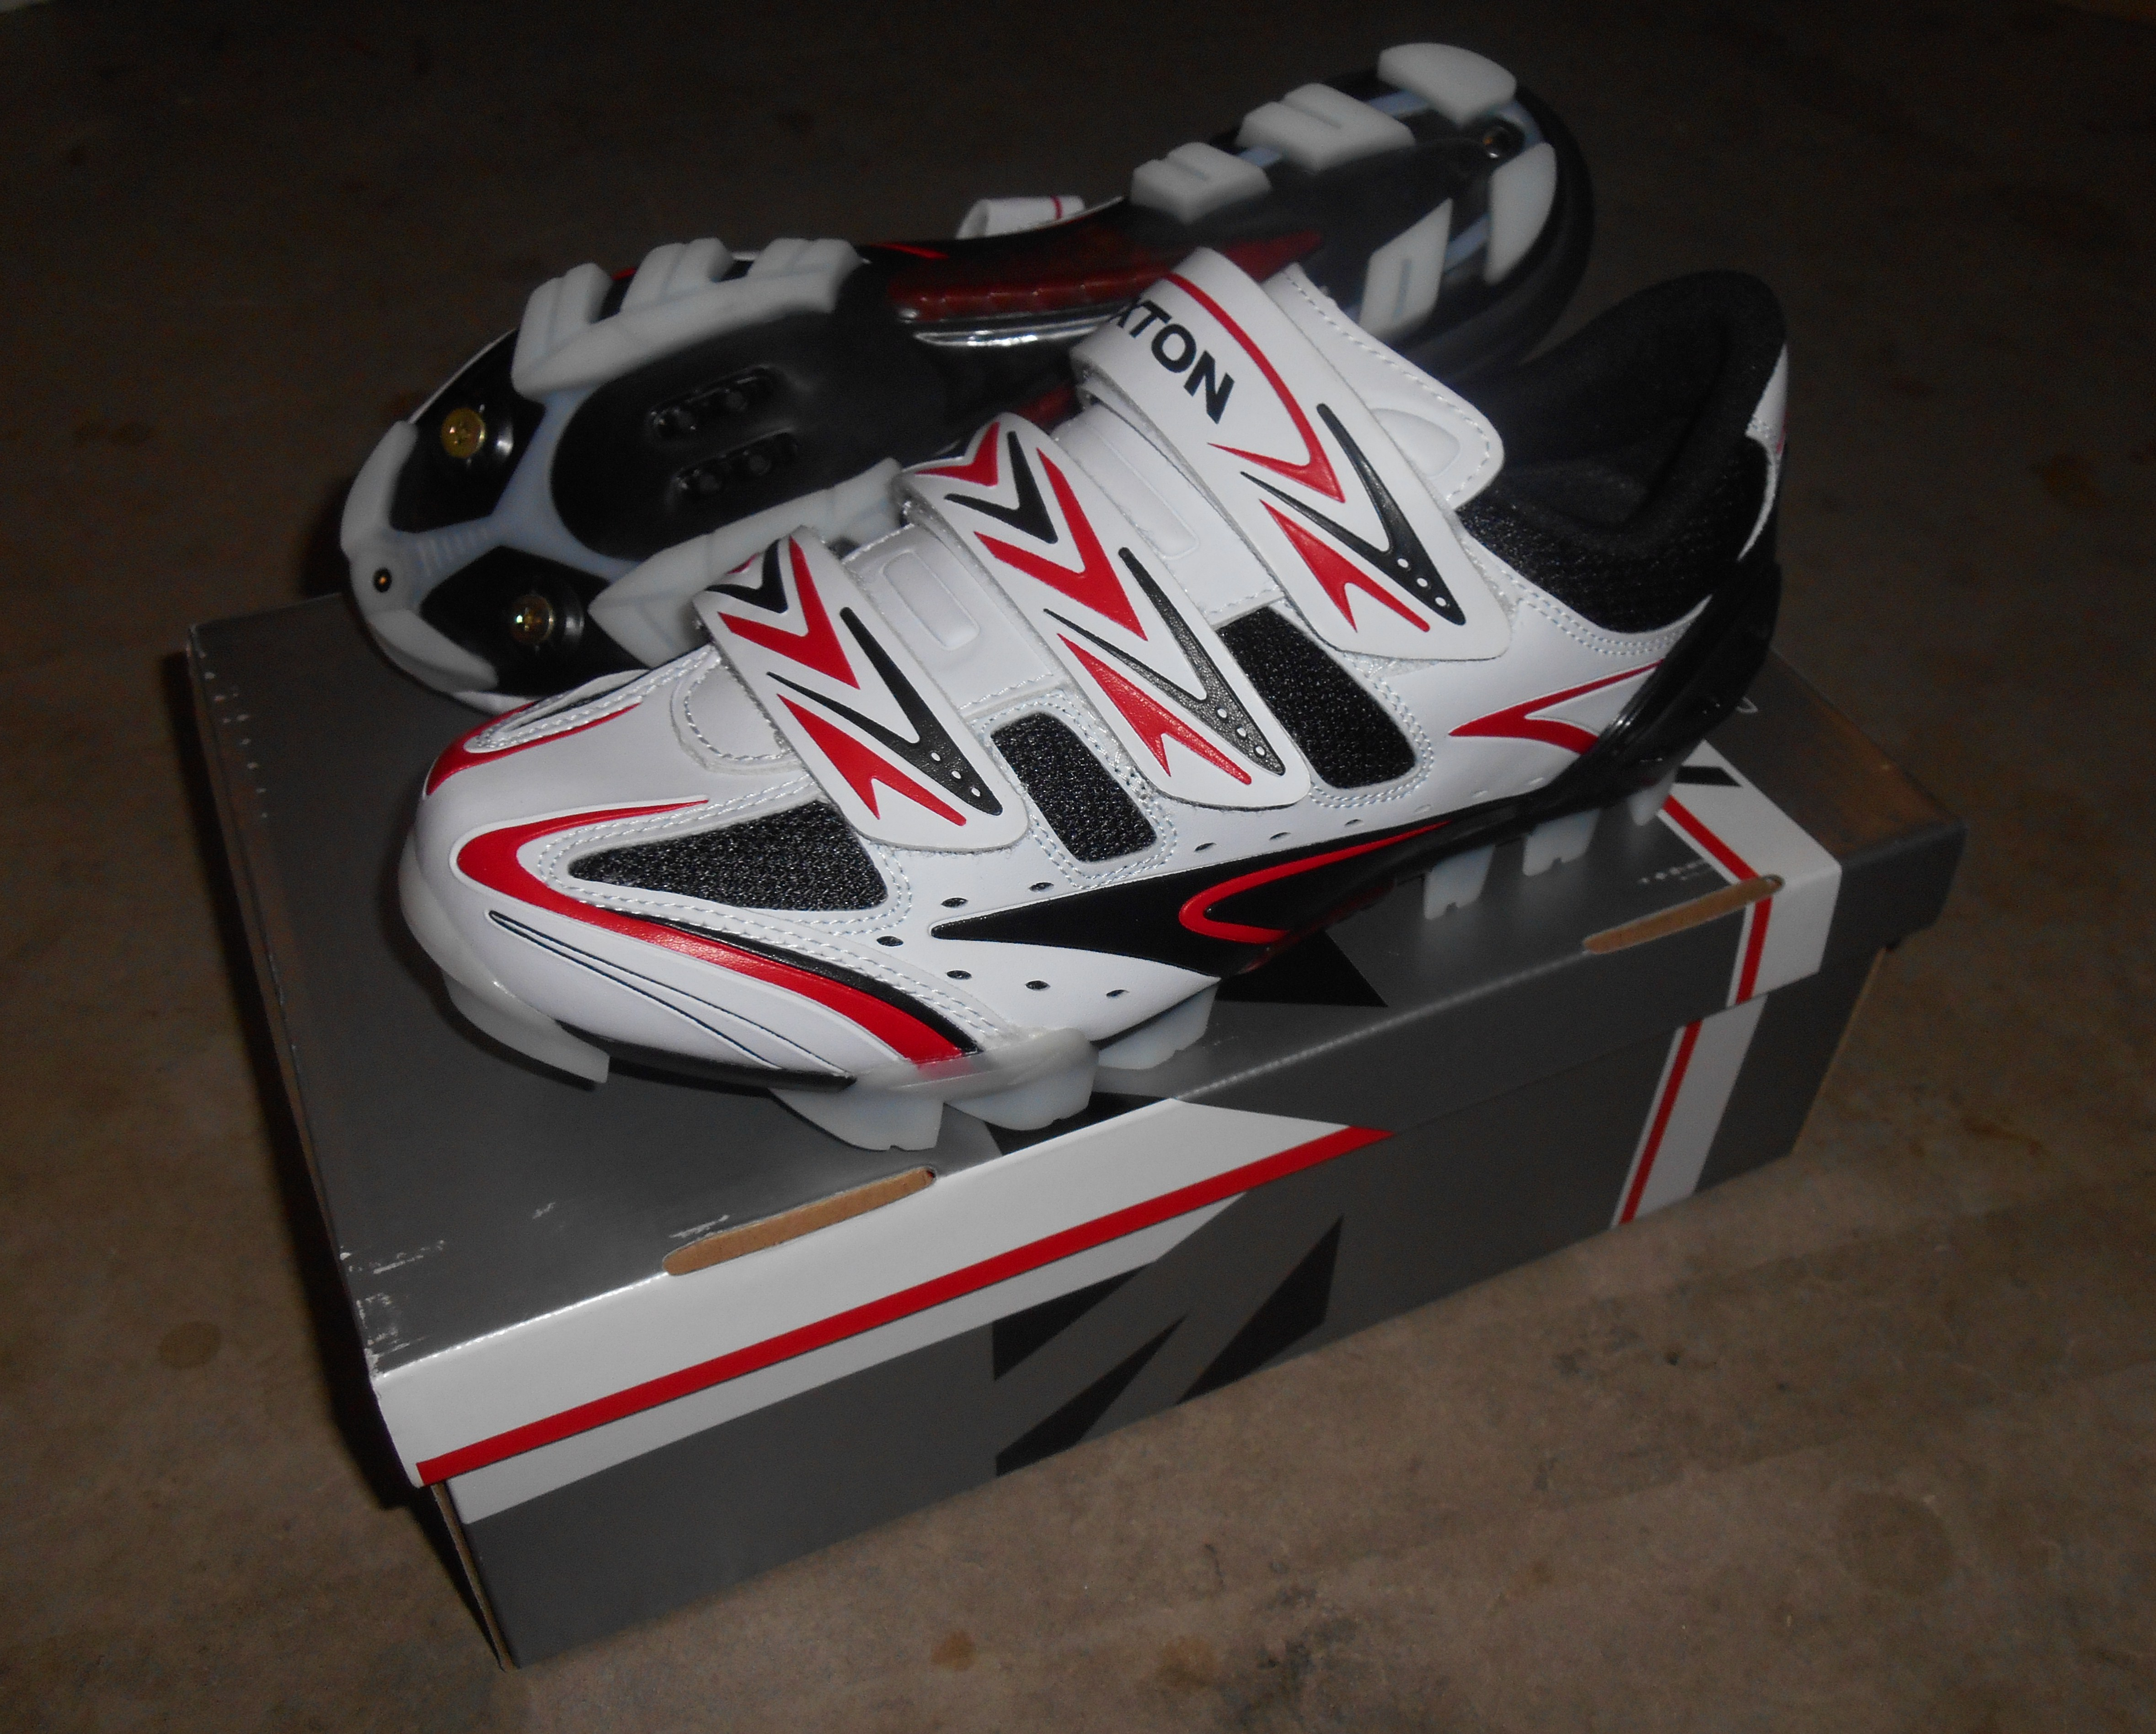 Rexton AB-222 SPD MTB Cycling Shoes size EU 45 / UK 10.5